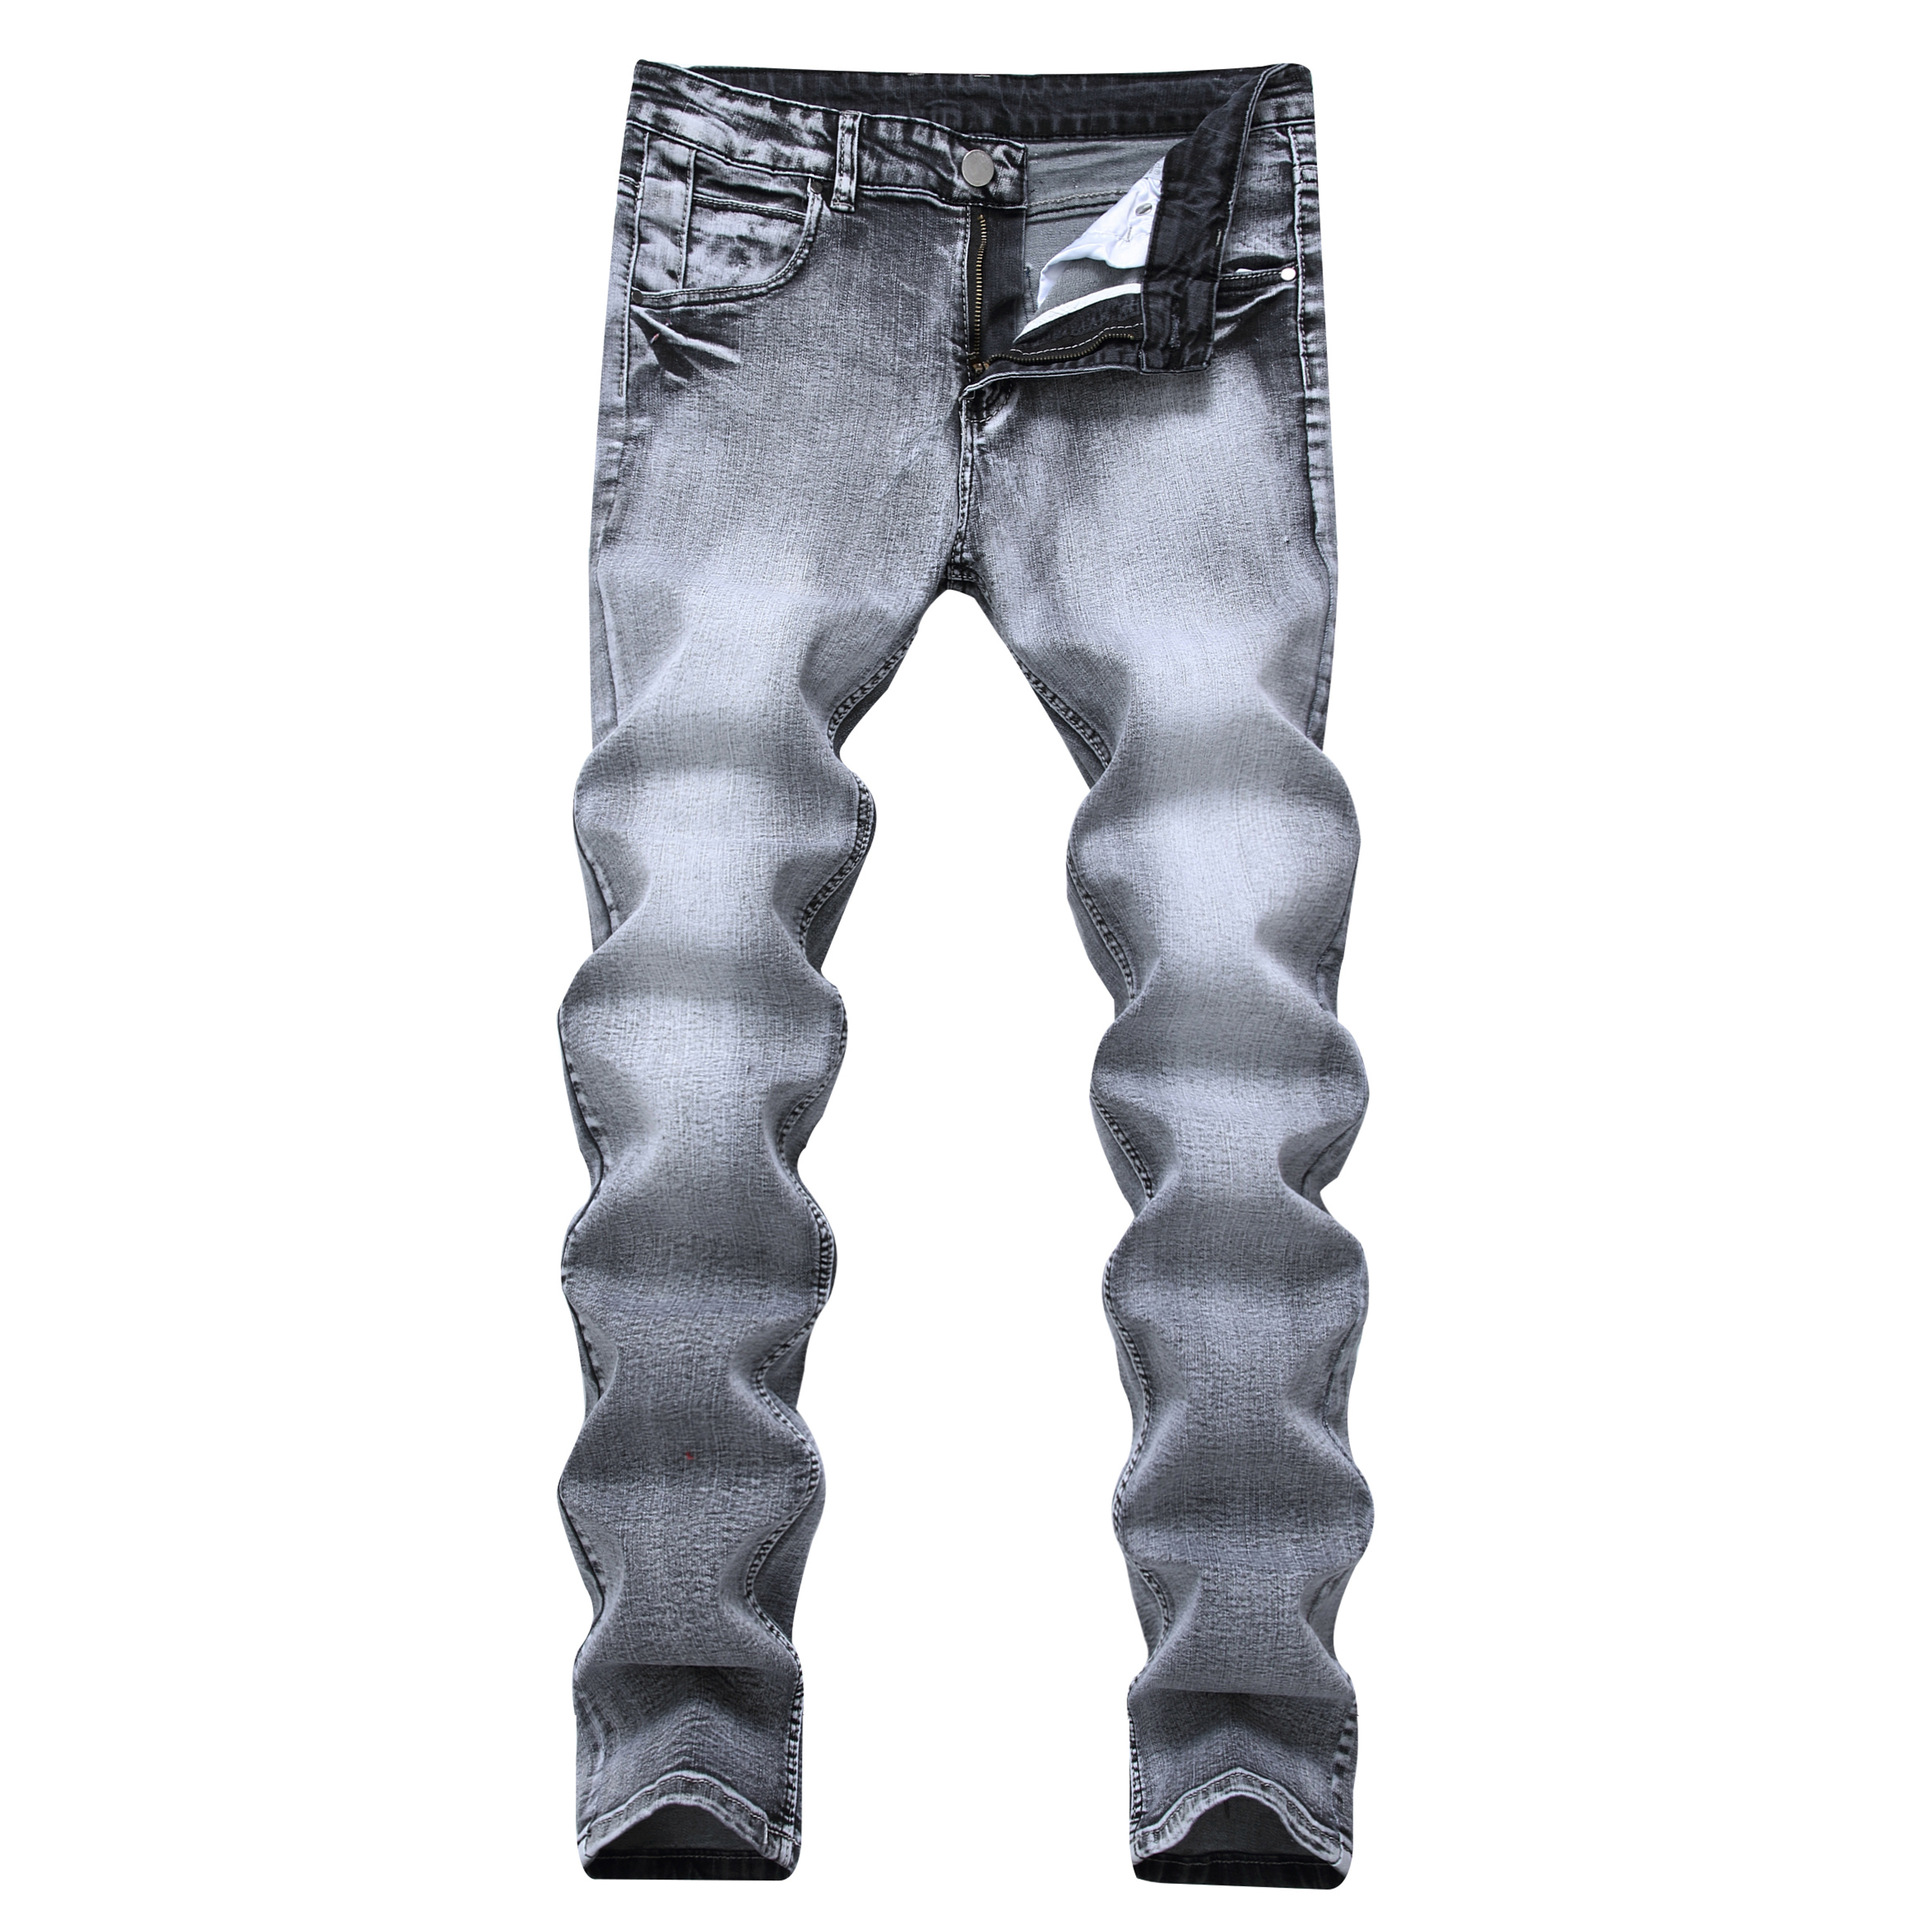 2018 men light gray stretch jeans, cultivate ones morality nostalgia The cowboy pants